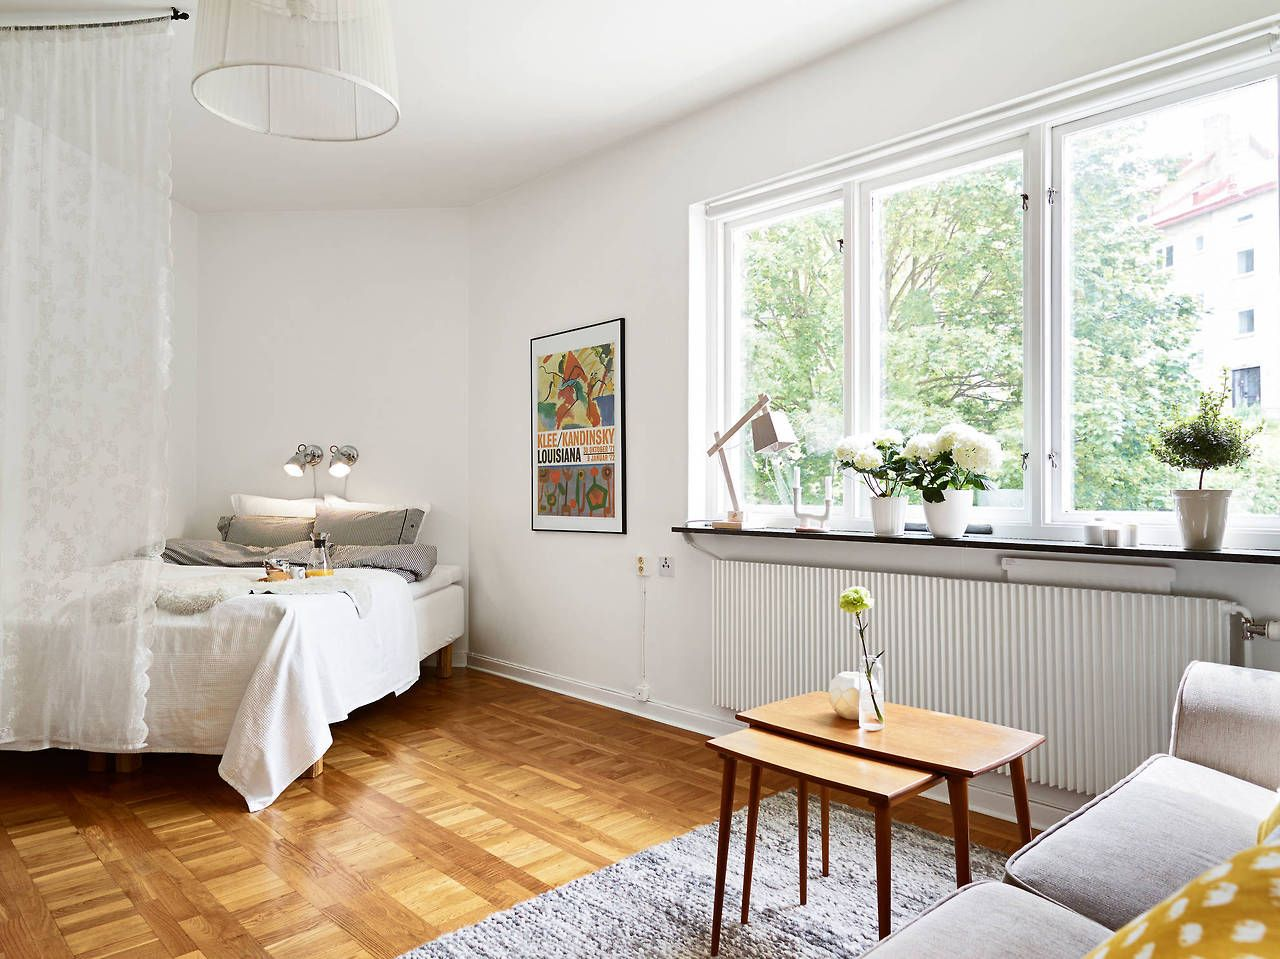 Hochbett Studentenzimmer Studio Apartment Small Apartments Pinterest